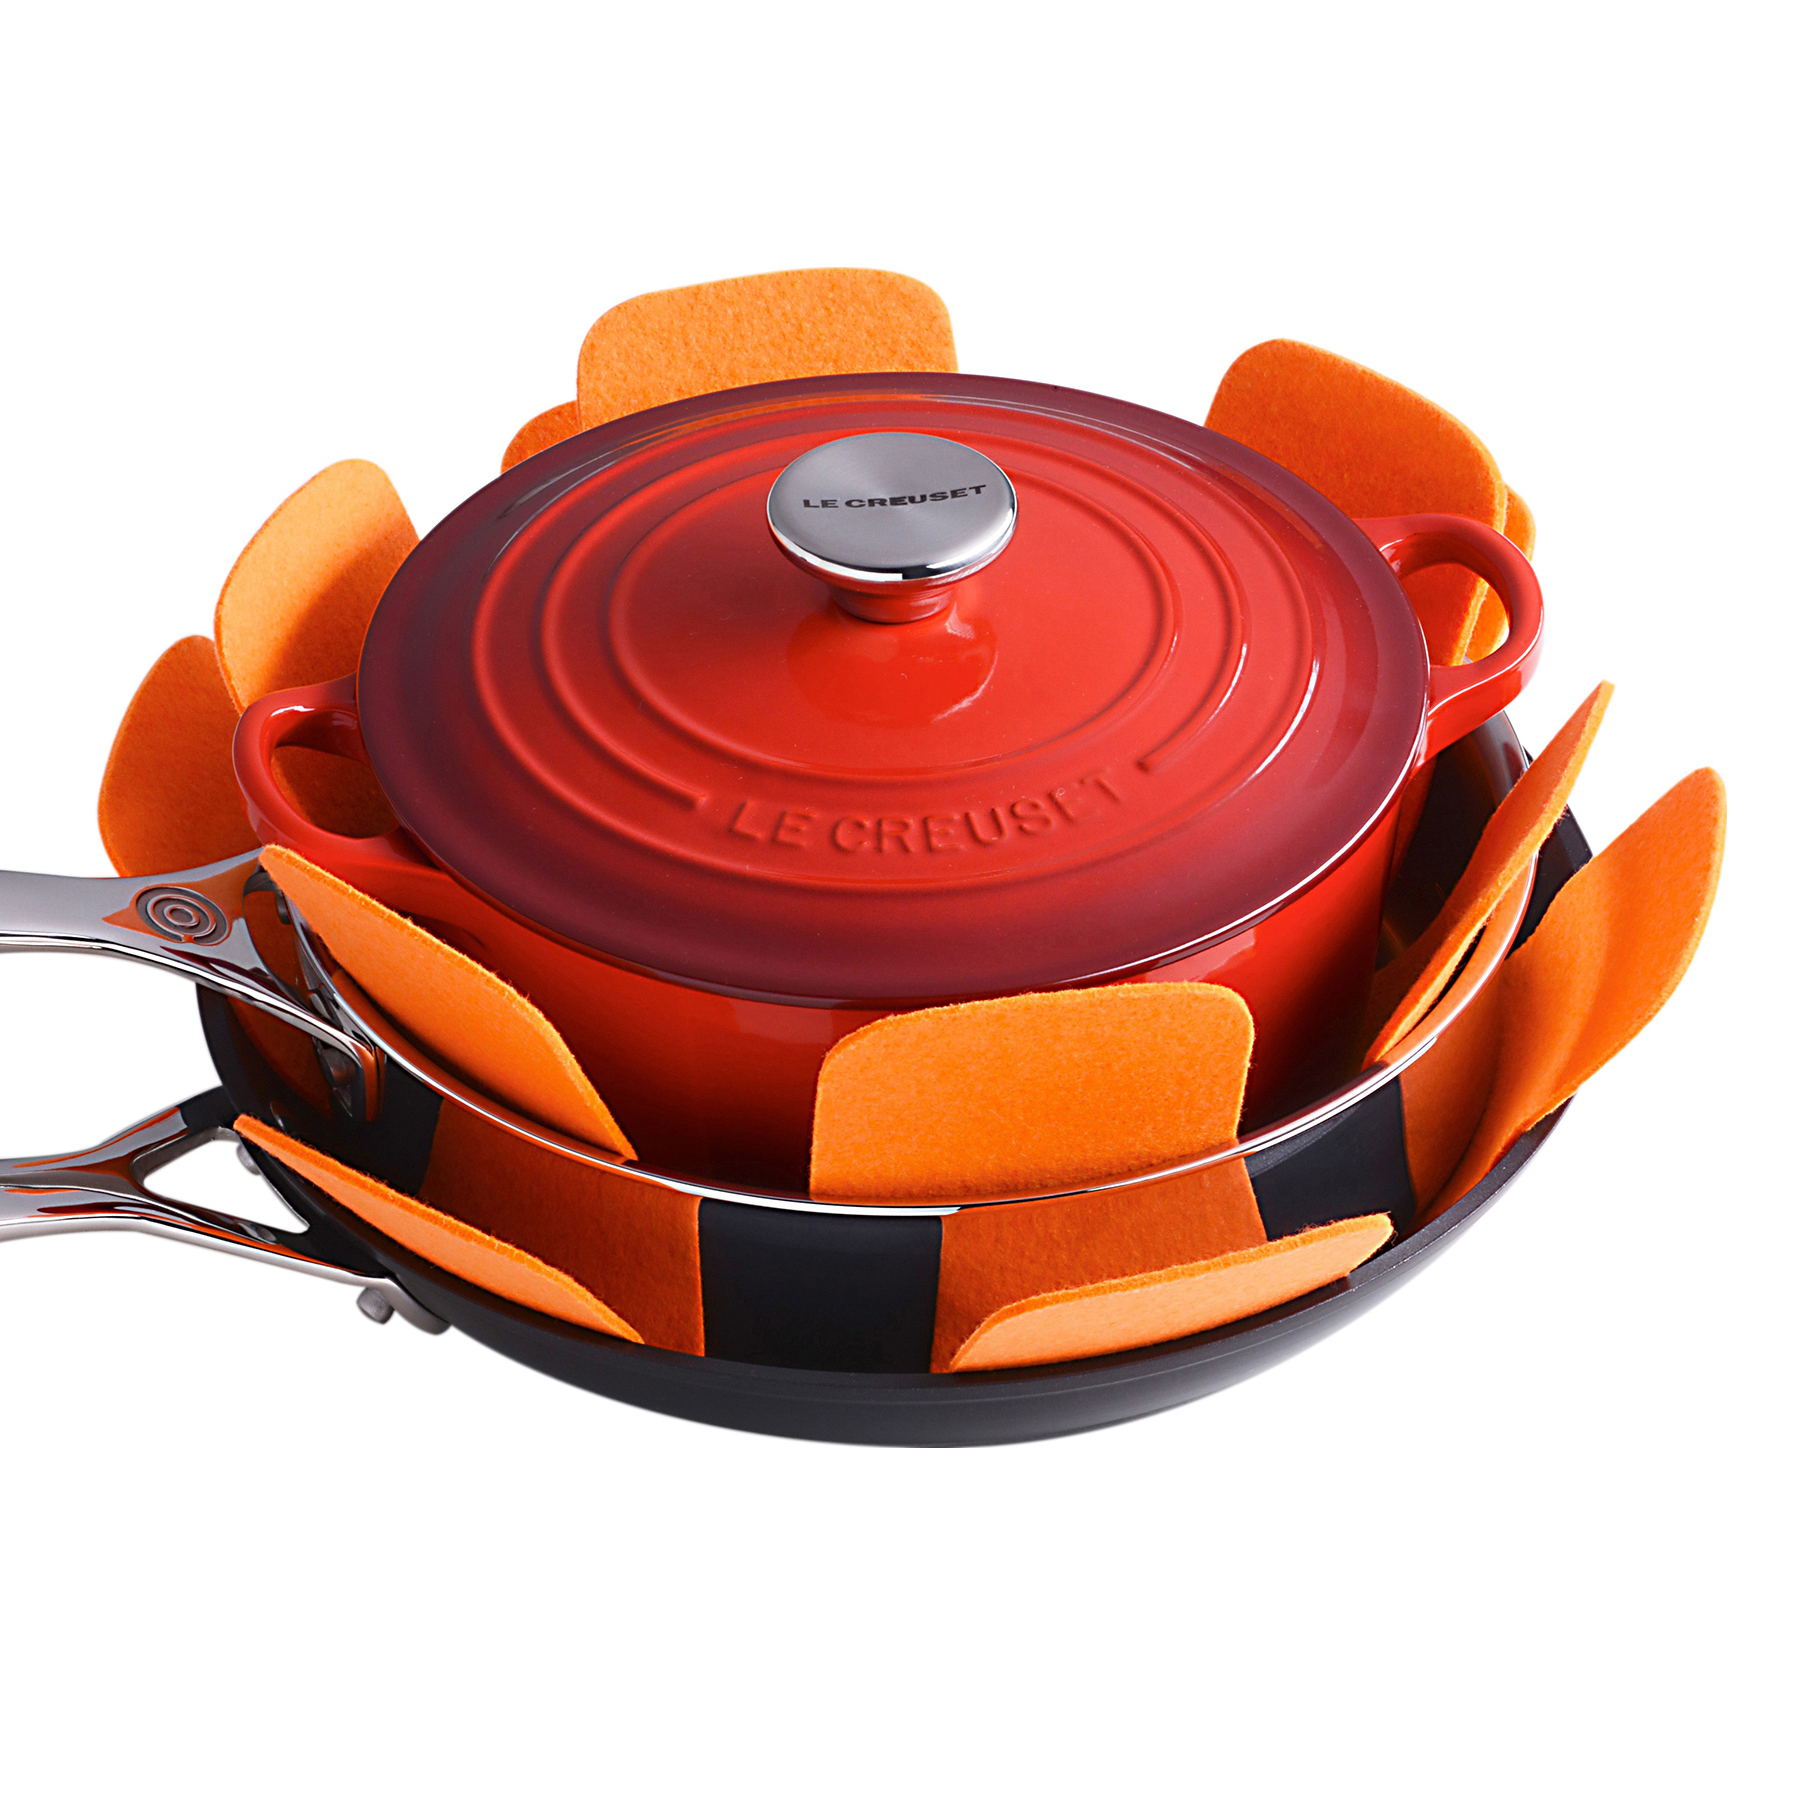 Le Creuset Flame Felt 16 Inch Pan Protector, Set of 3